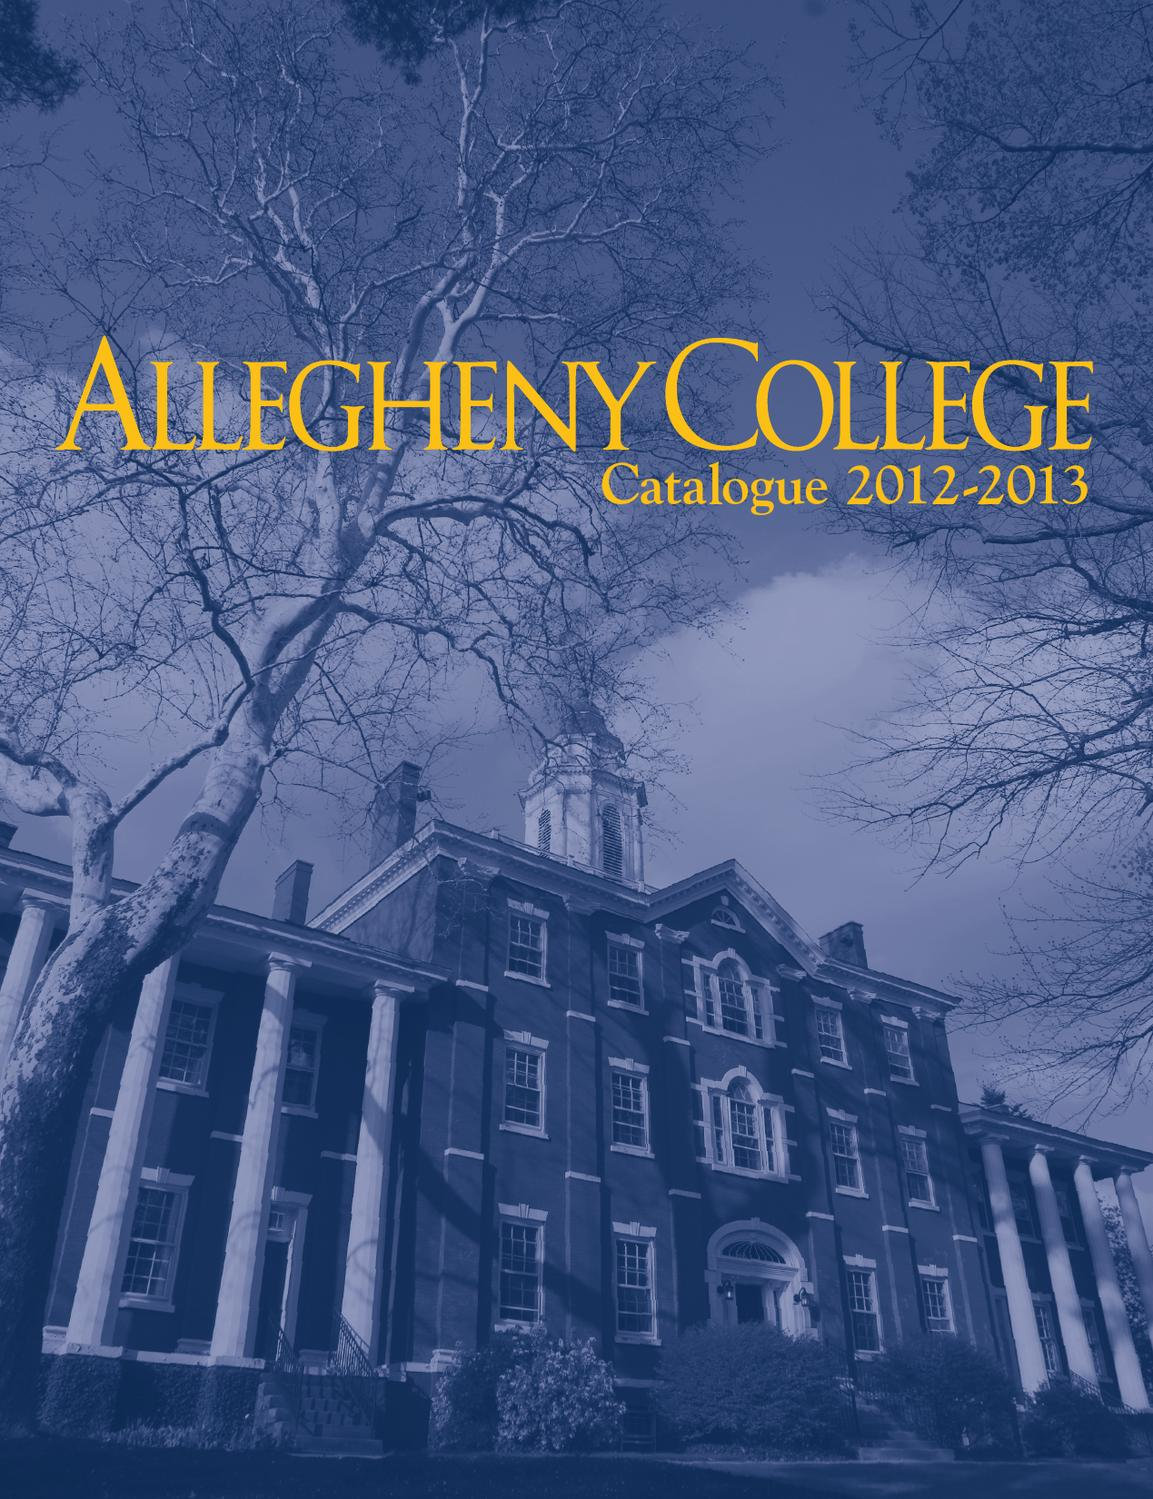 Allegheny College Course Catalogue 2012-2013 by Allegheny